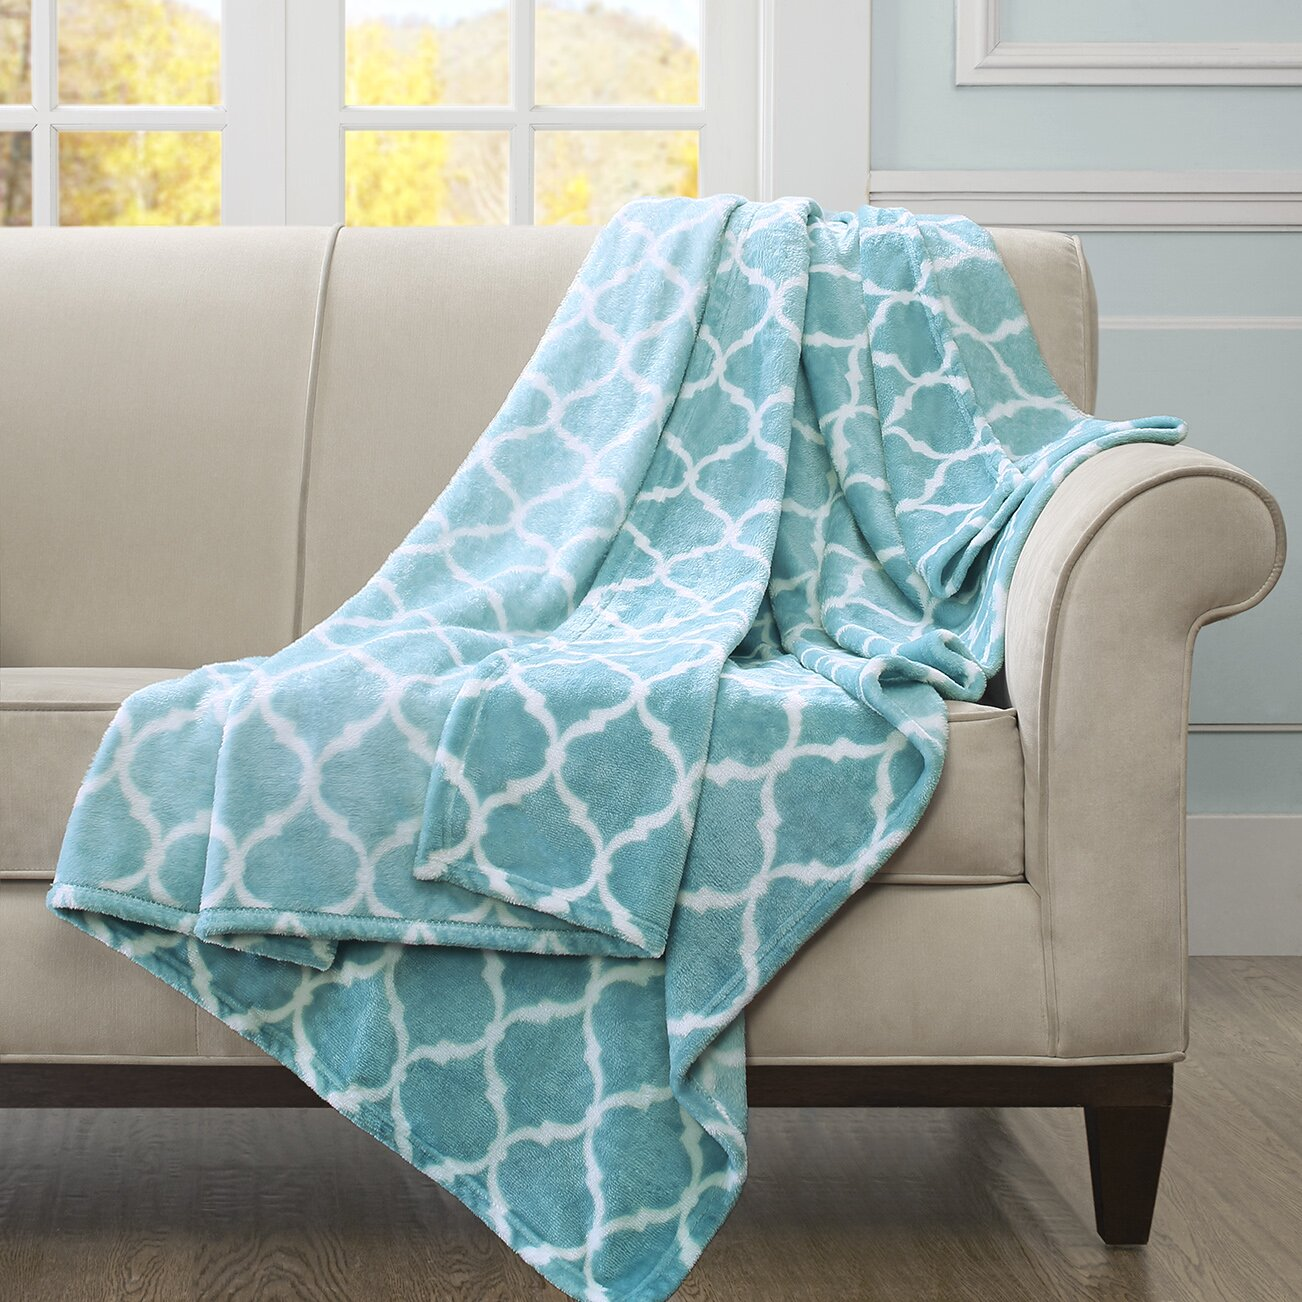 House of Hampton Rosalie Oversized Throw Blanket & Reviews ...